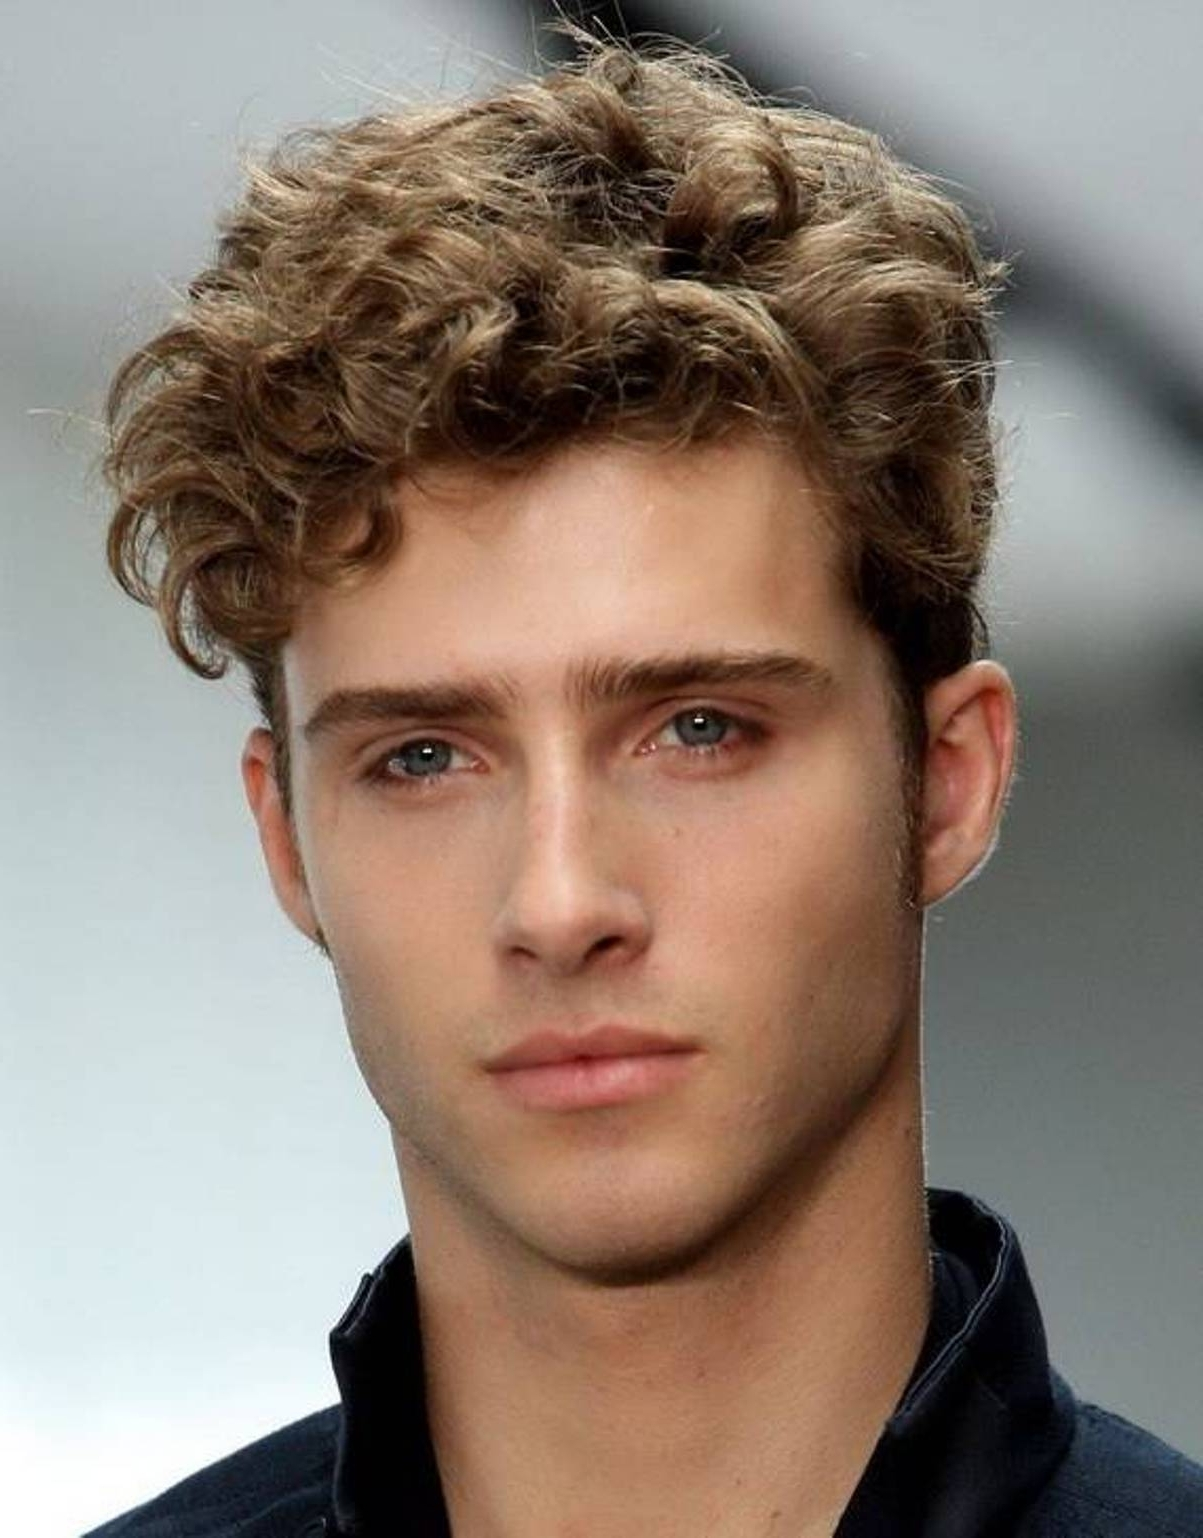 Size Matters: 60's Hair Trends That Rocked The Nation | Short With 2018 Male Pixie Hairstyles (View 13 of 15)